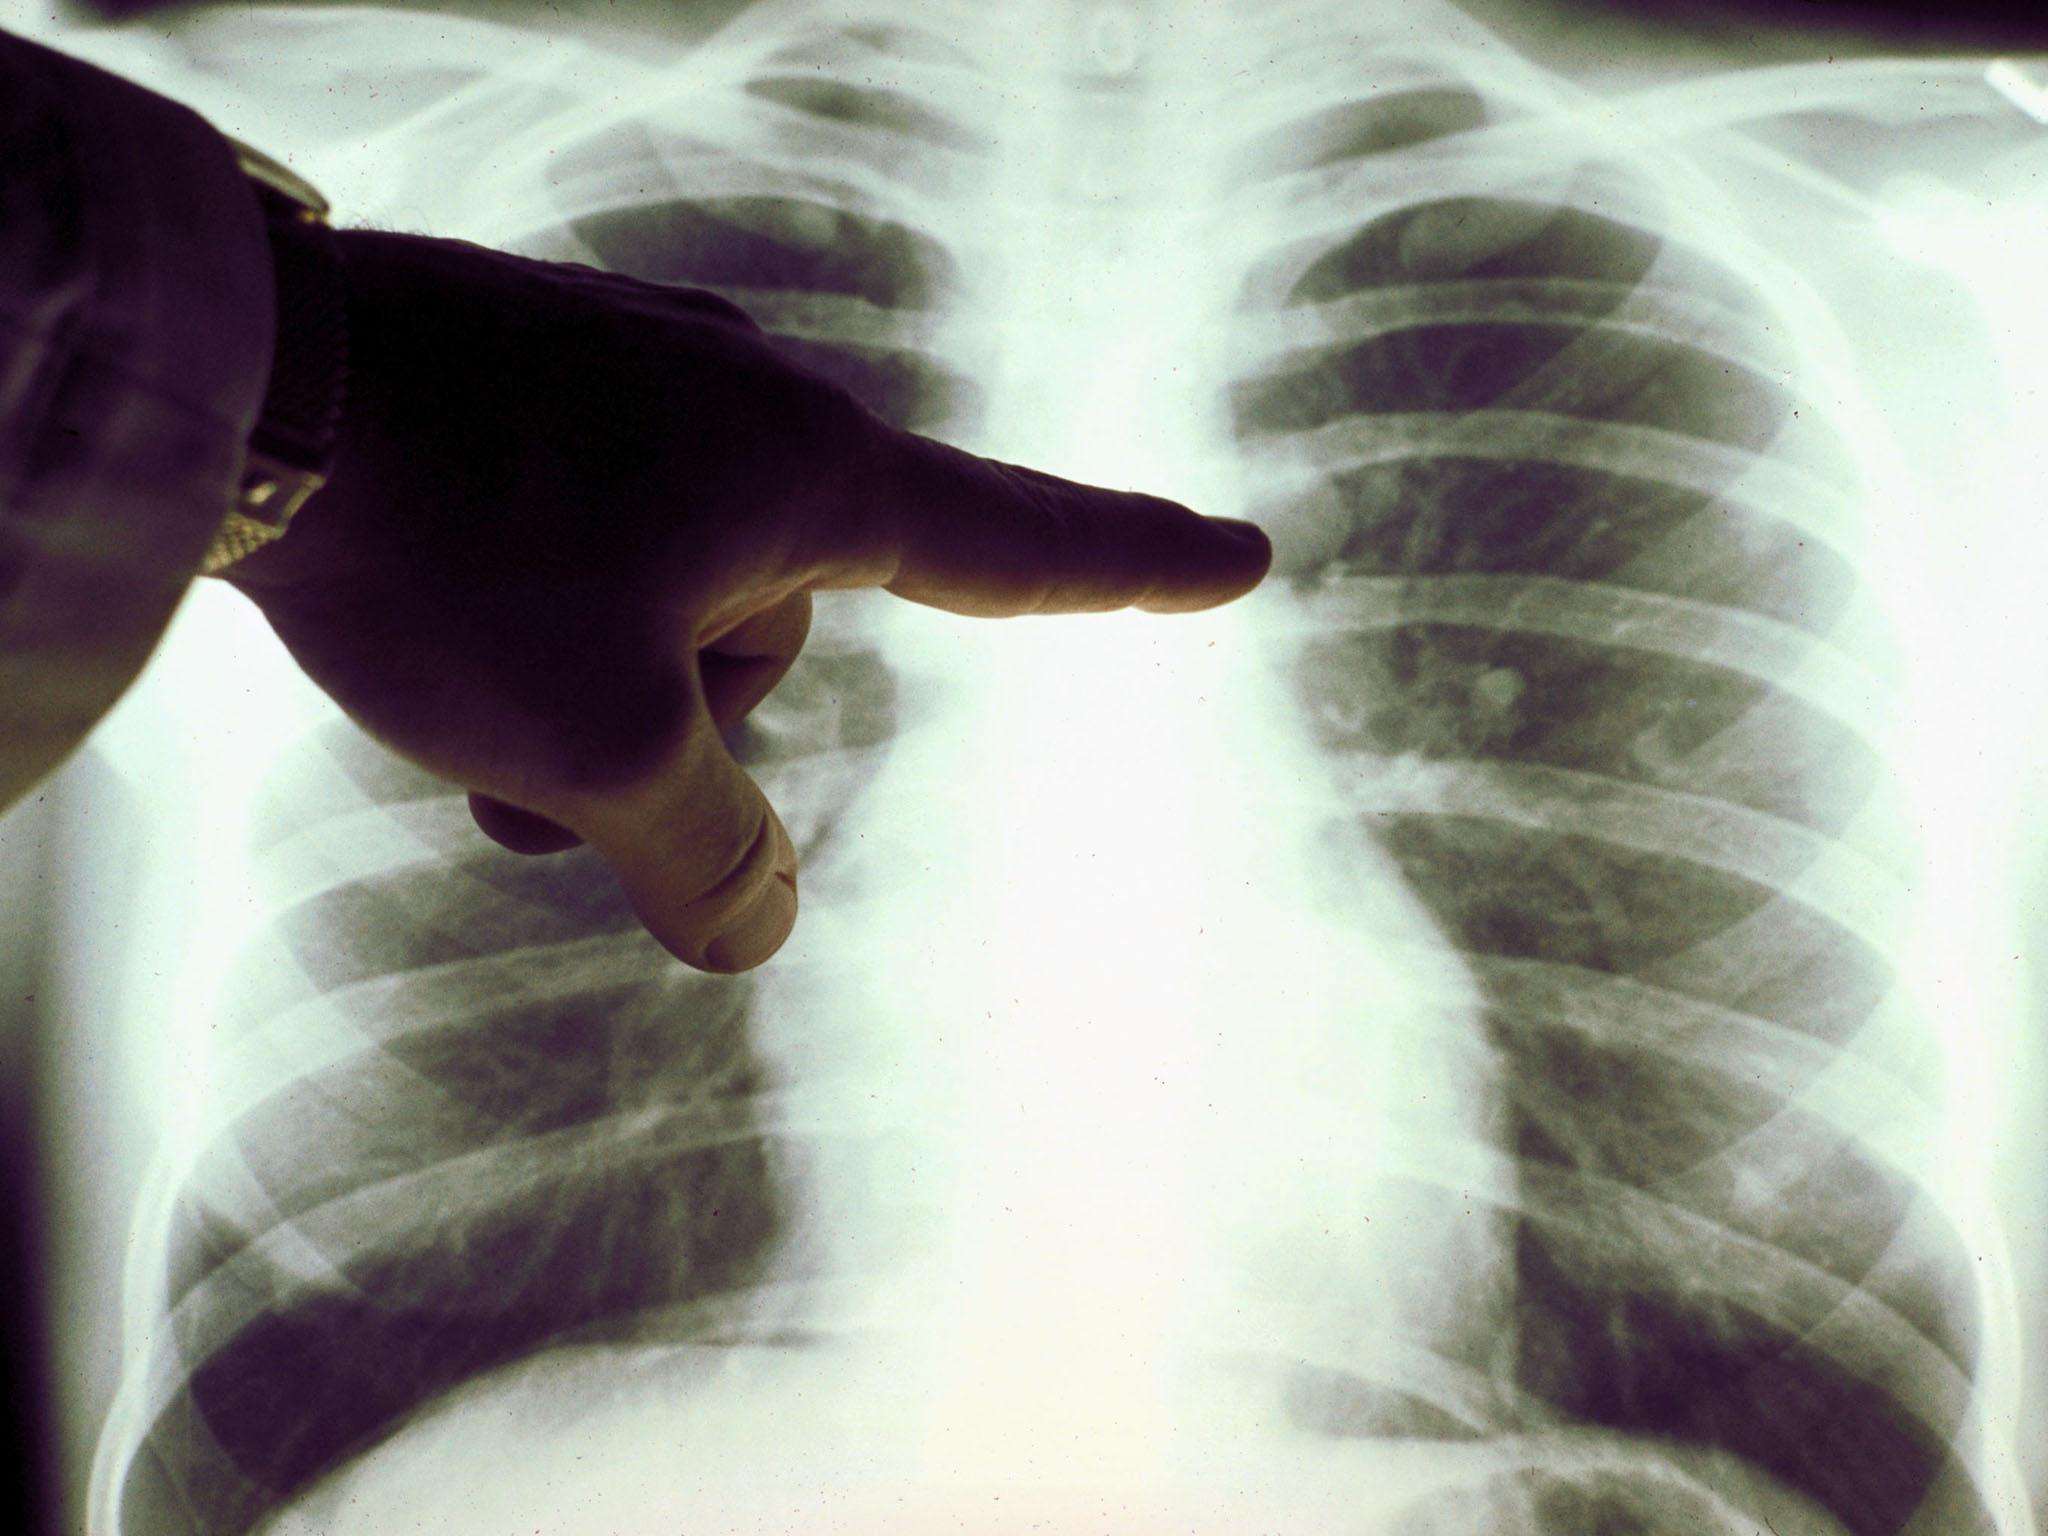 NHS radiology to be reviewed after hospital causes 'significant harm' to cancer patients